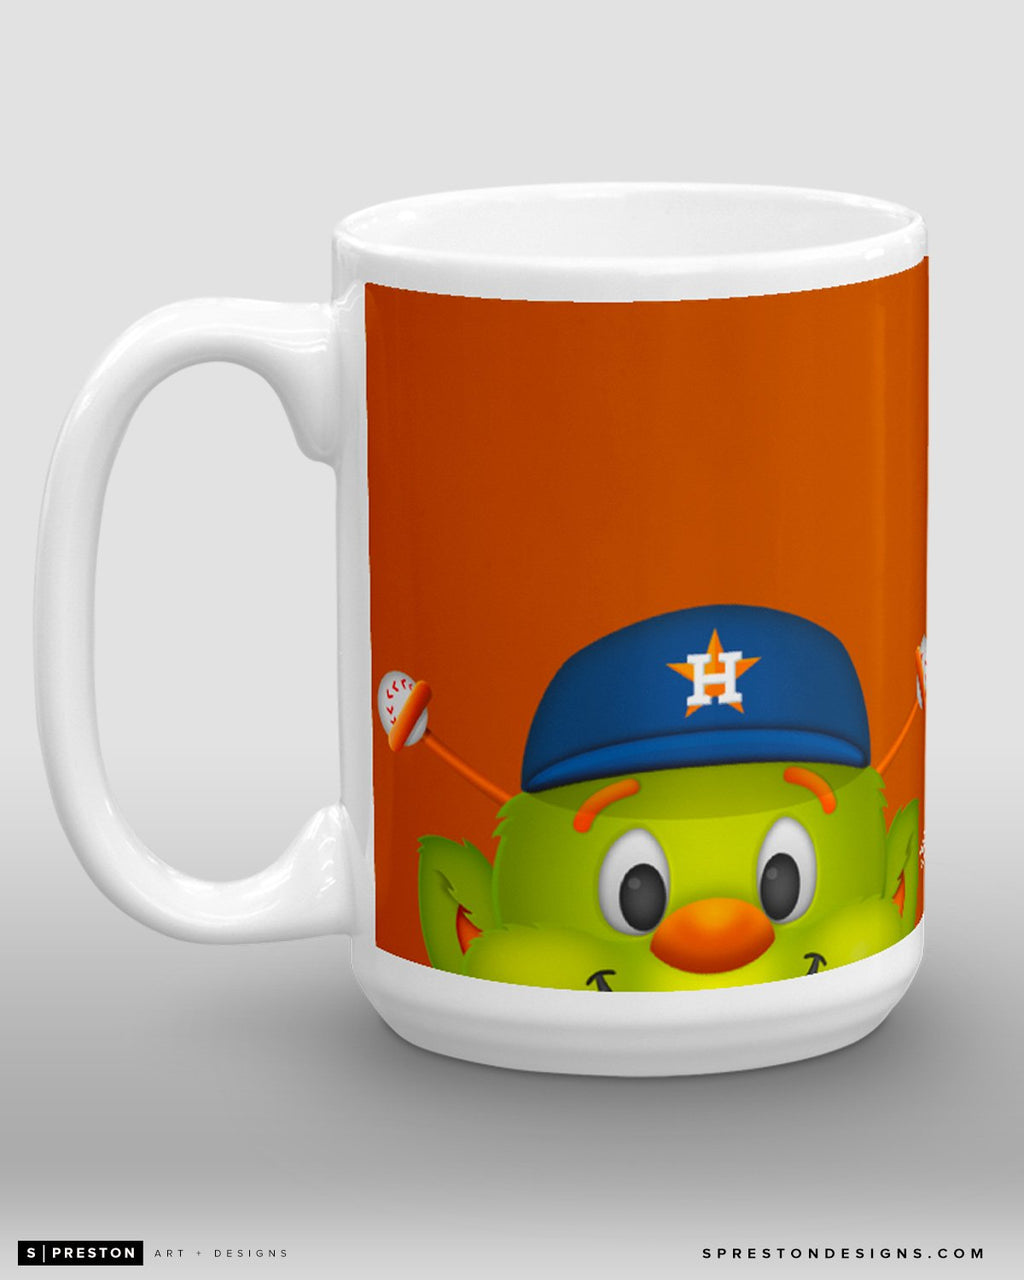 Houston Astros Mascot